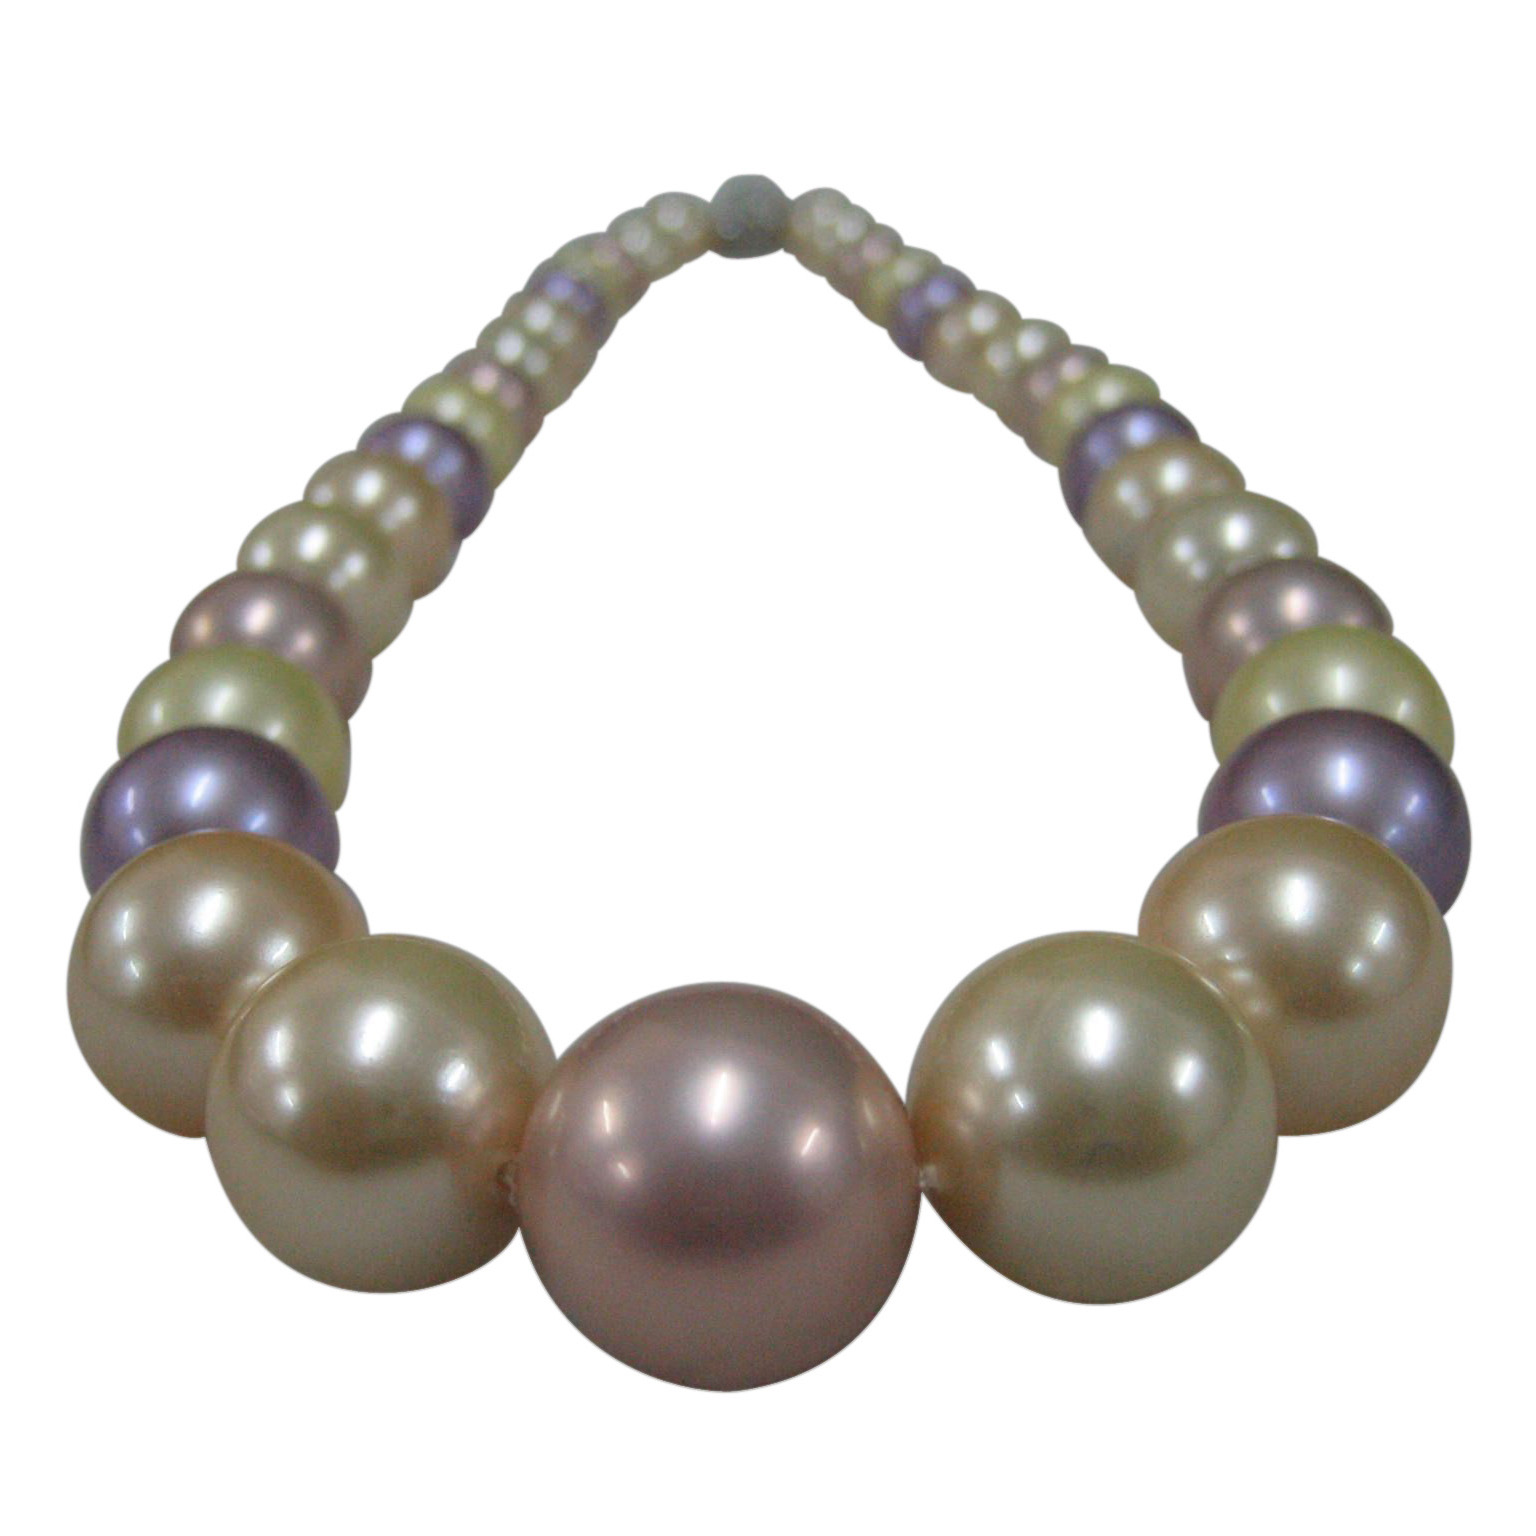 Shell pearl strands